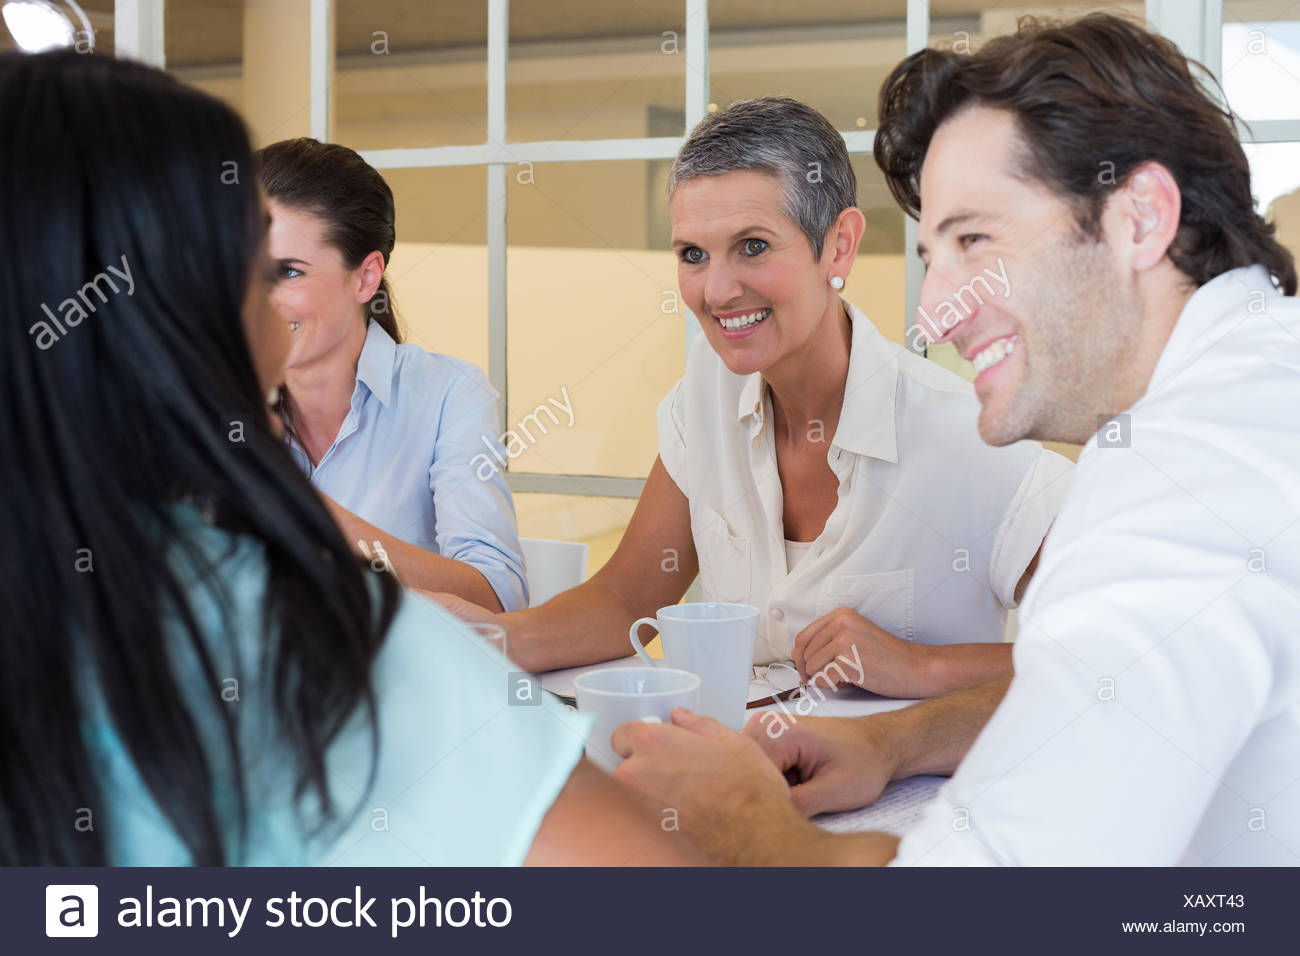 Business people smile and chat while enjoying hot drinks - Stock Image